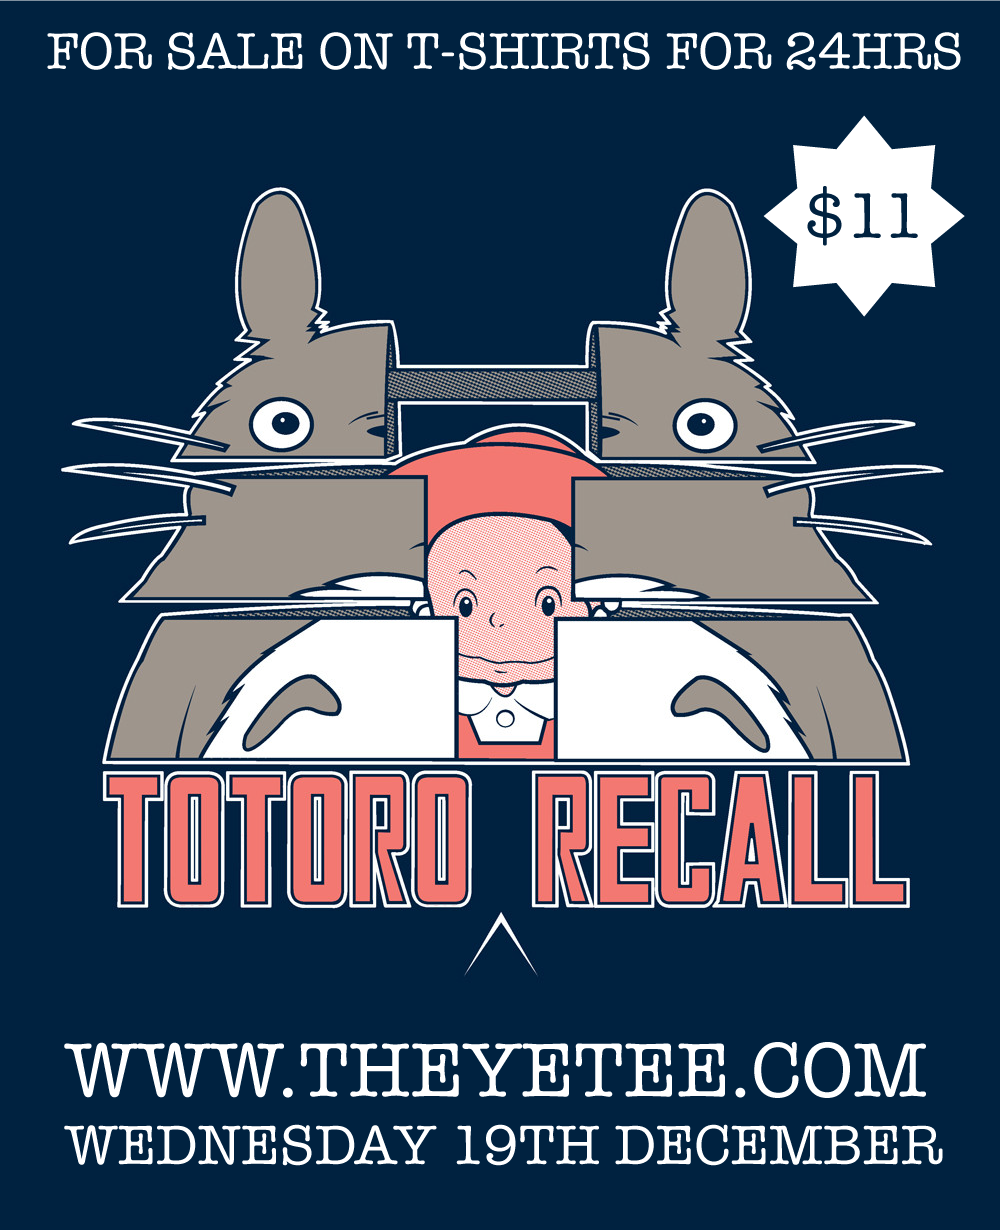 gordonbrebnerdesigns:  Totoro Recall by GordonBDesigns, for sale on t-shirts for $11 for only 24 hours at The Yetee , get yours now!  ____________________________________ Follow GordonBDesigns on Facebook